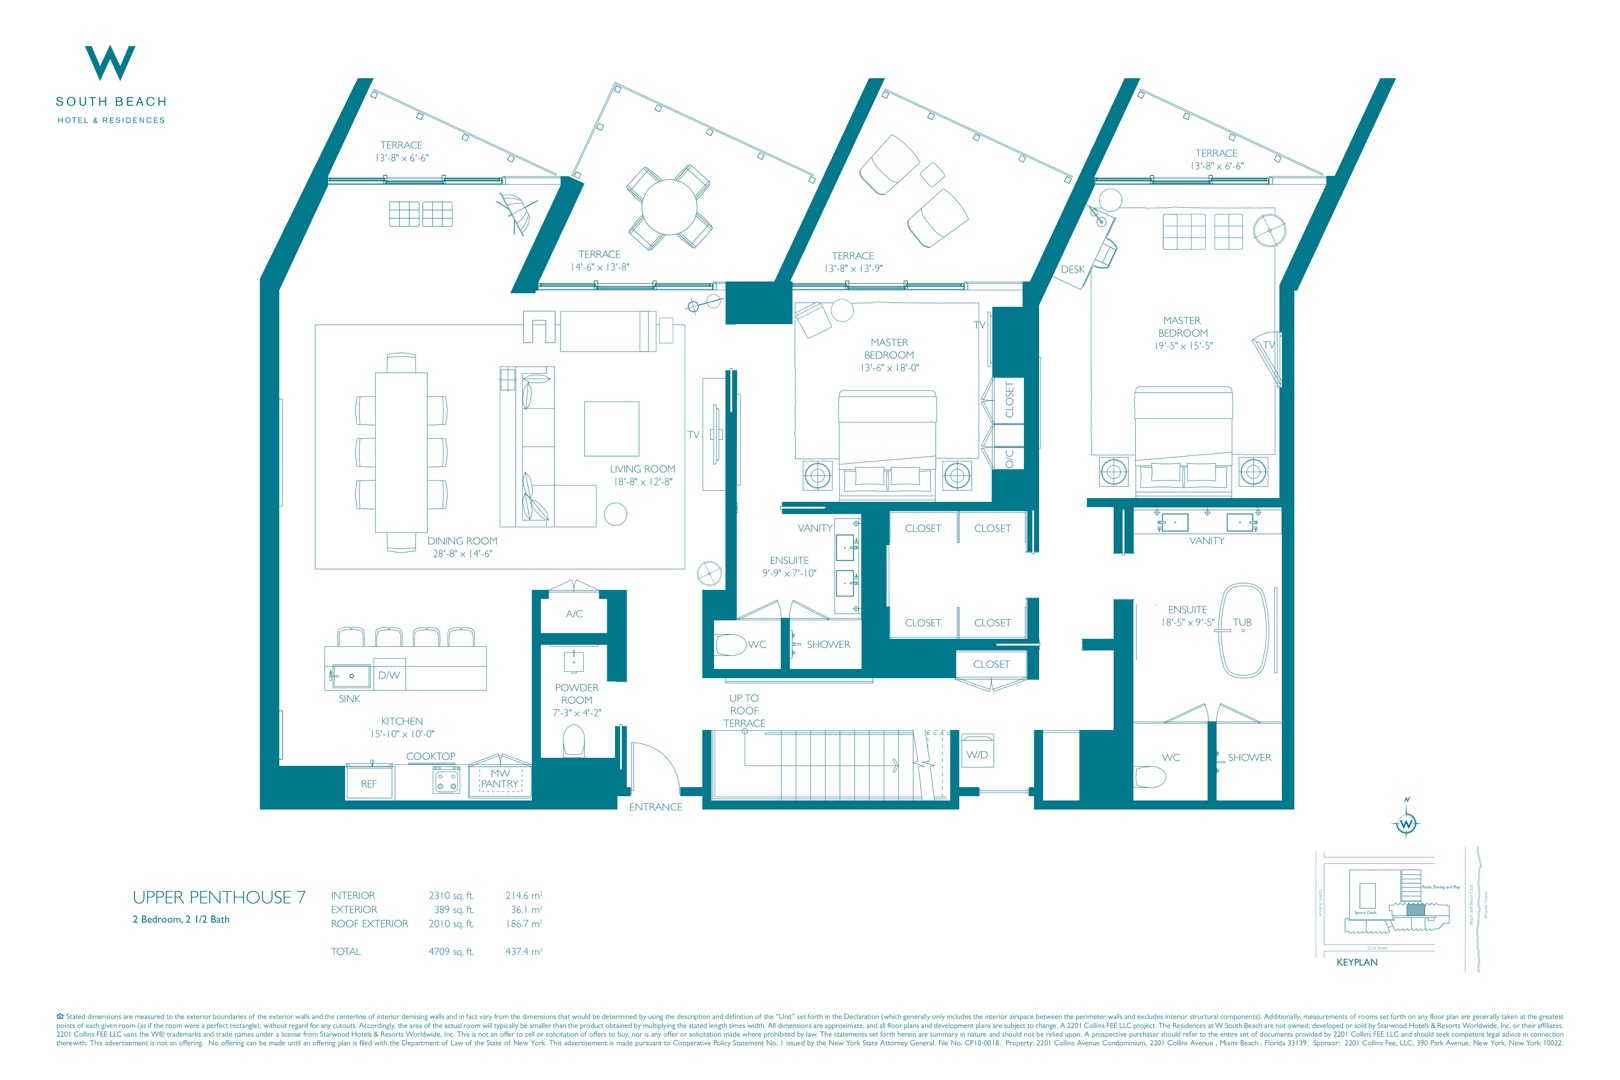 Floor plan image W South Beach Penthouse 7 - 2/2/1  - 5426 sqft image